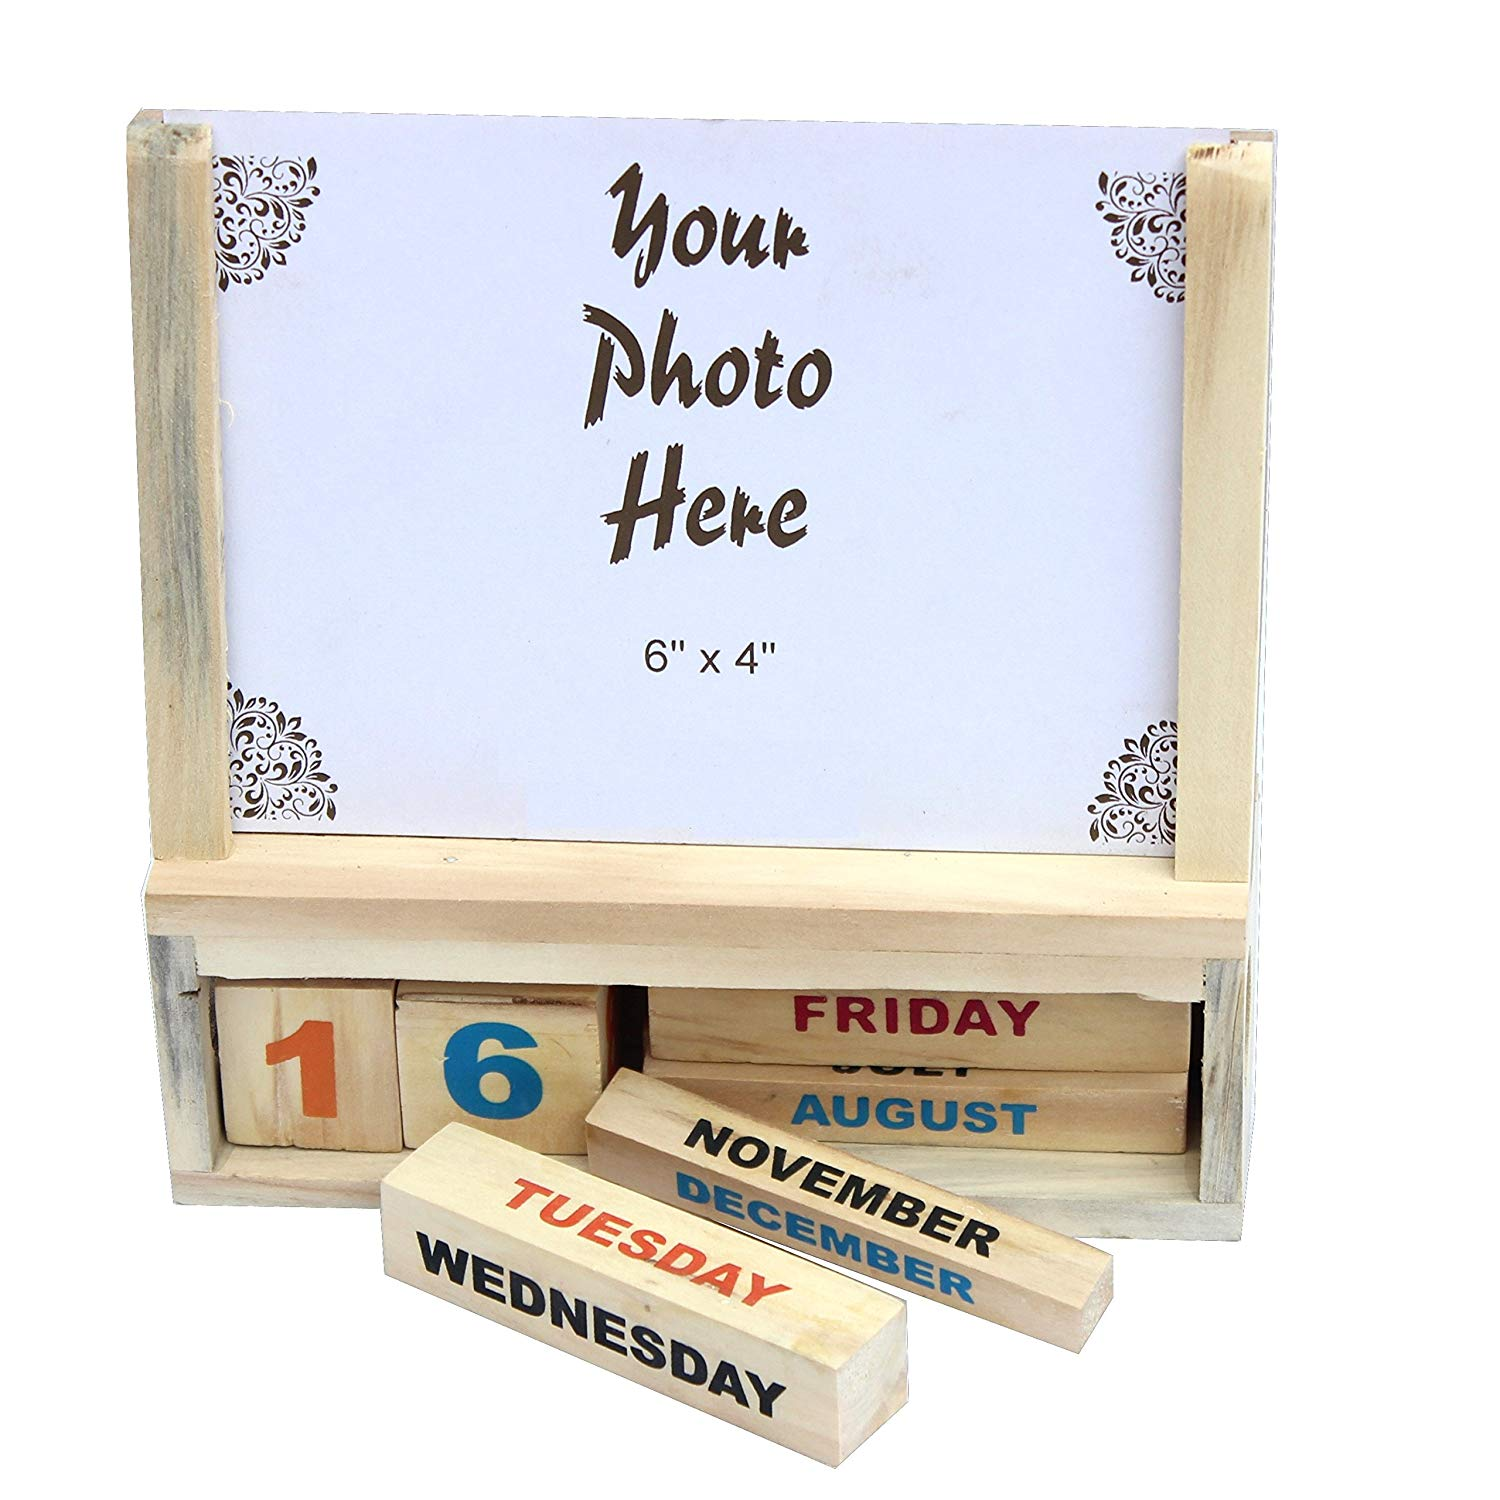 Wooden Photo Frame with Calendar Handmade Crafted Wooden Calendar with a Photo Frame Use For Home Of